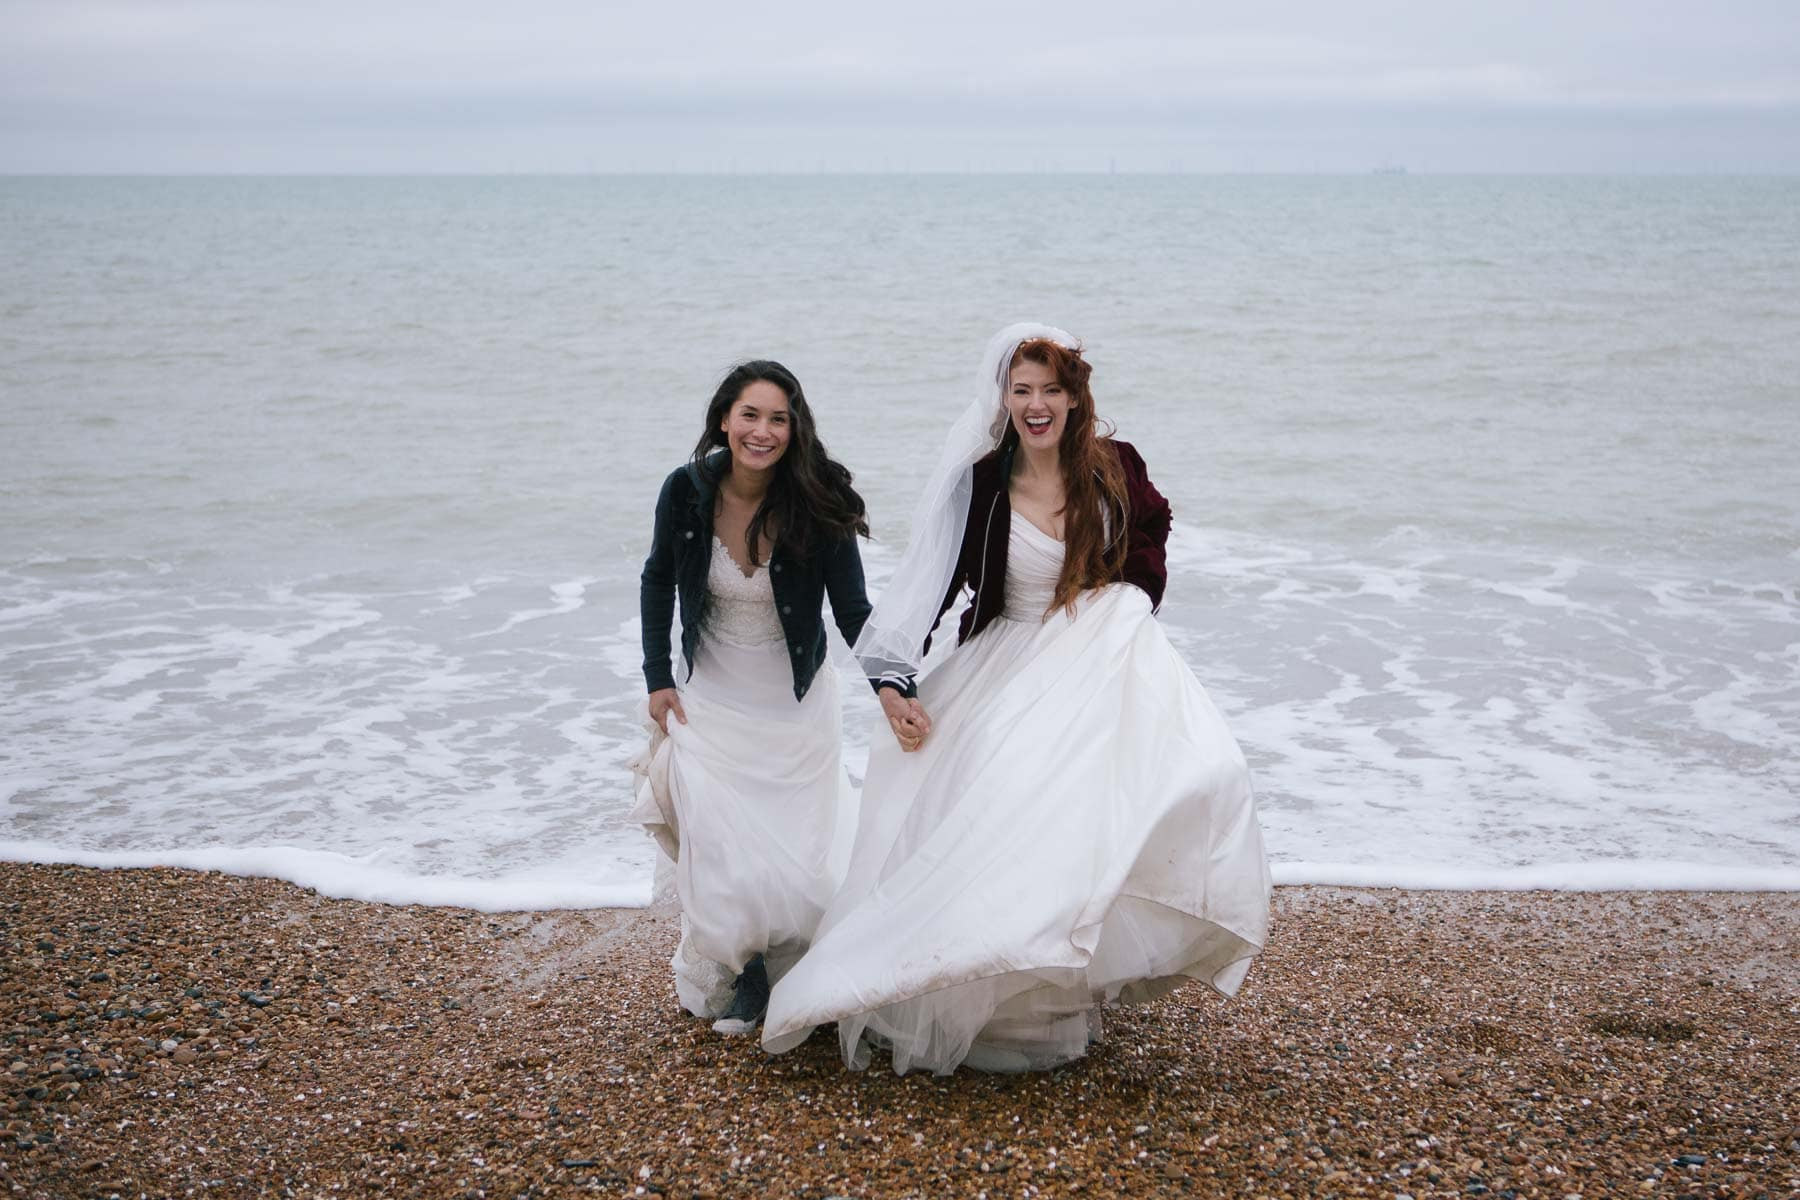 The bridal couple risk wet feet as they pose with their backs to the incoming tide